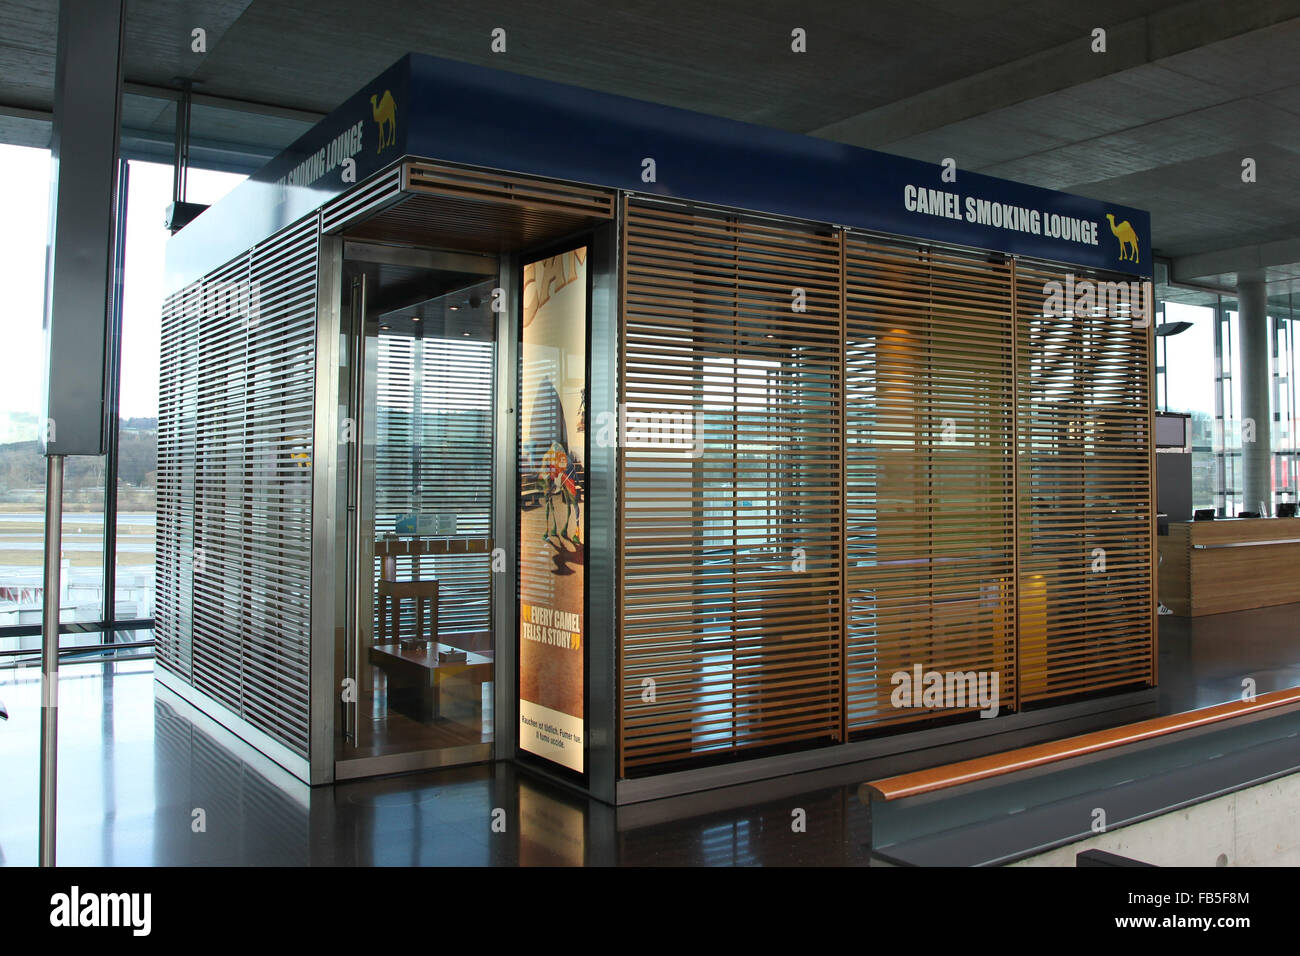 Zurich International Airport  with smoking lounge for smokers. - Stock Image